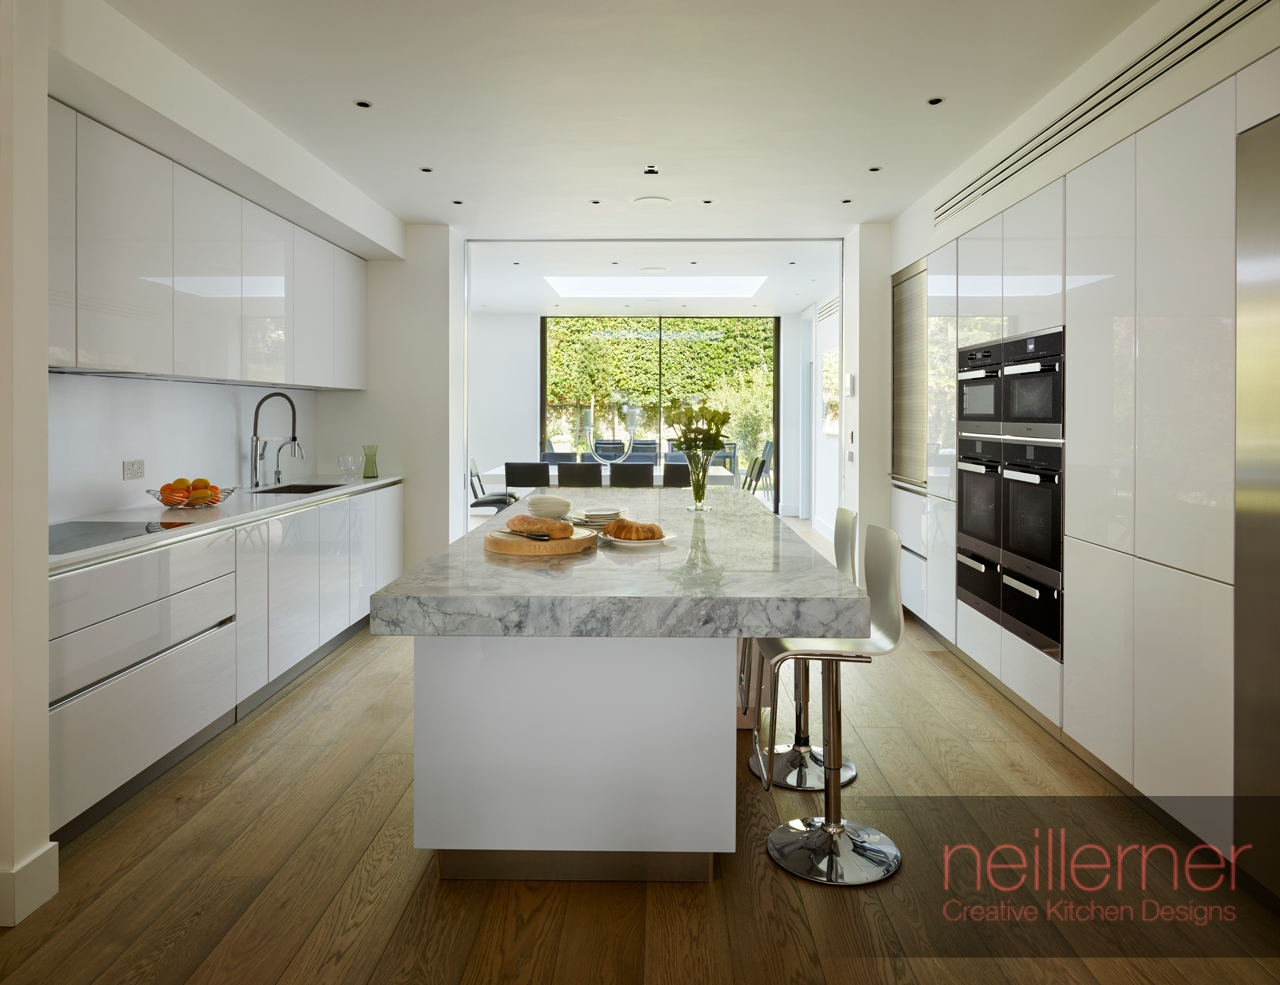 Fitted Family Kitchen Designs St Johns Wood Neil Lerner Kitchen - Family-kitchen-design